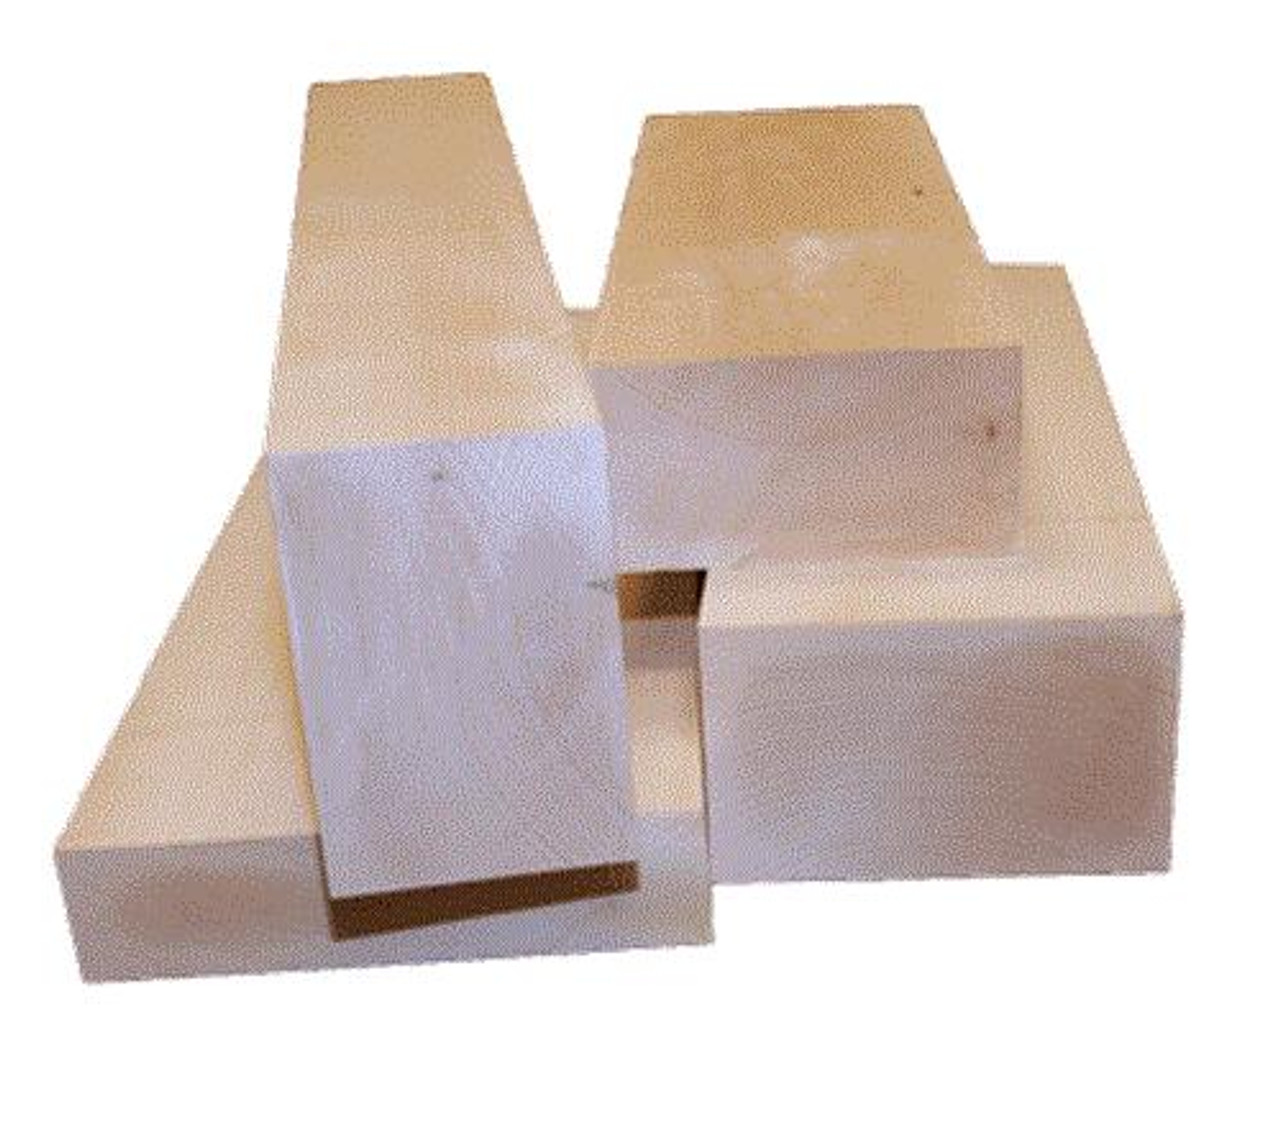 Cherry Tree Toys Basswood Carving Blank 3 x 4 x 18